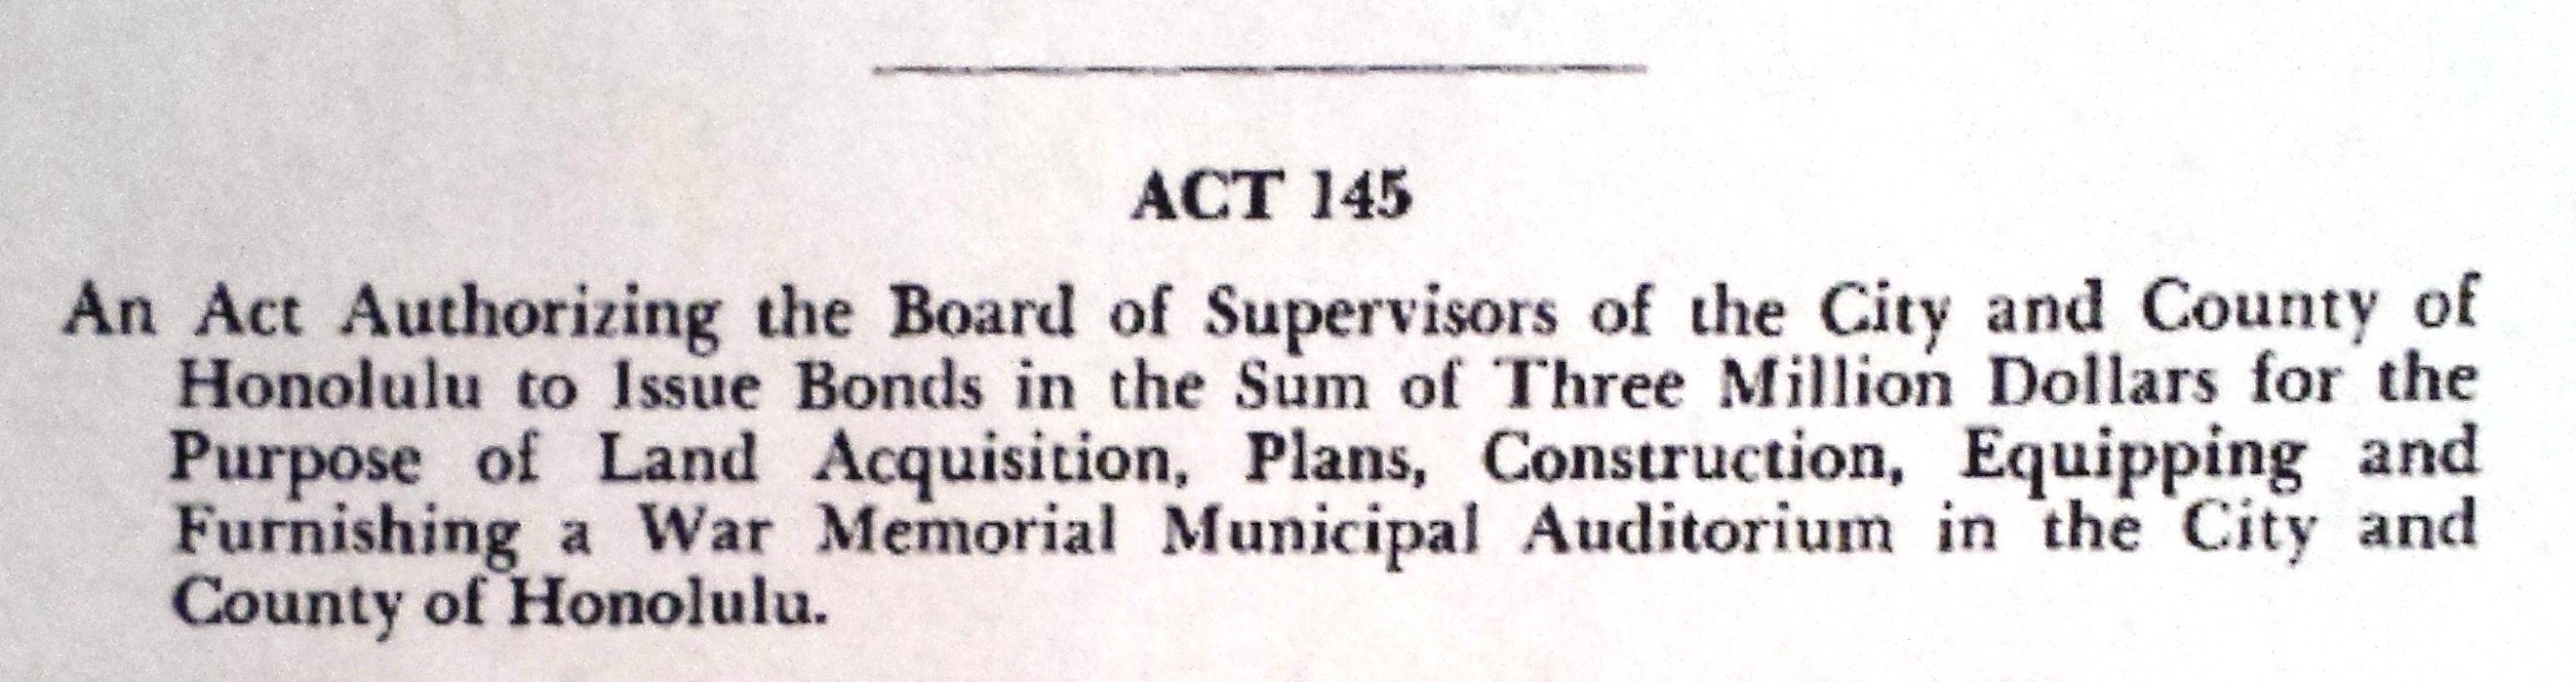 Hawaii Session Laws, excerpt from Act 145